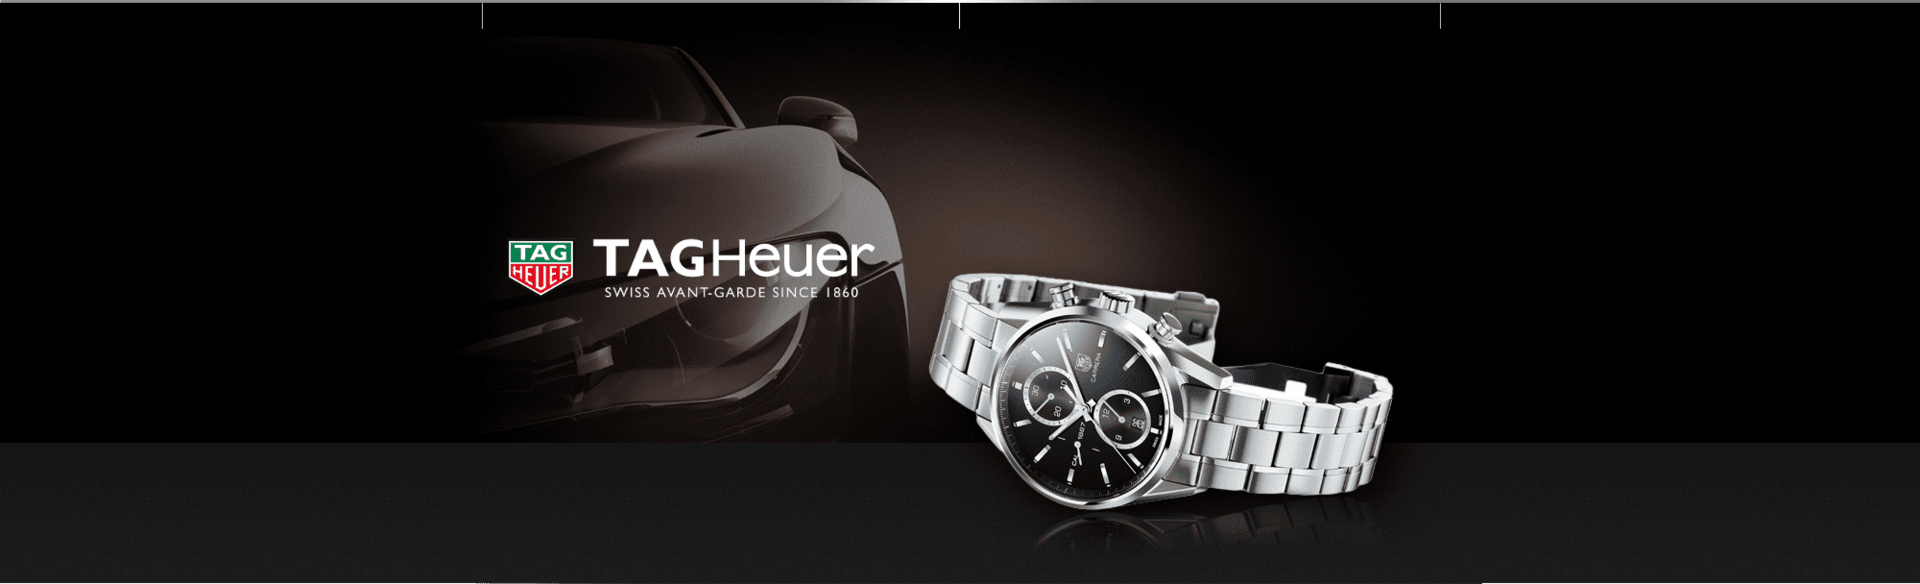 tag-heuer-background_new